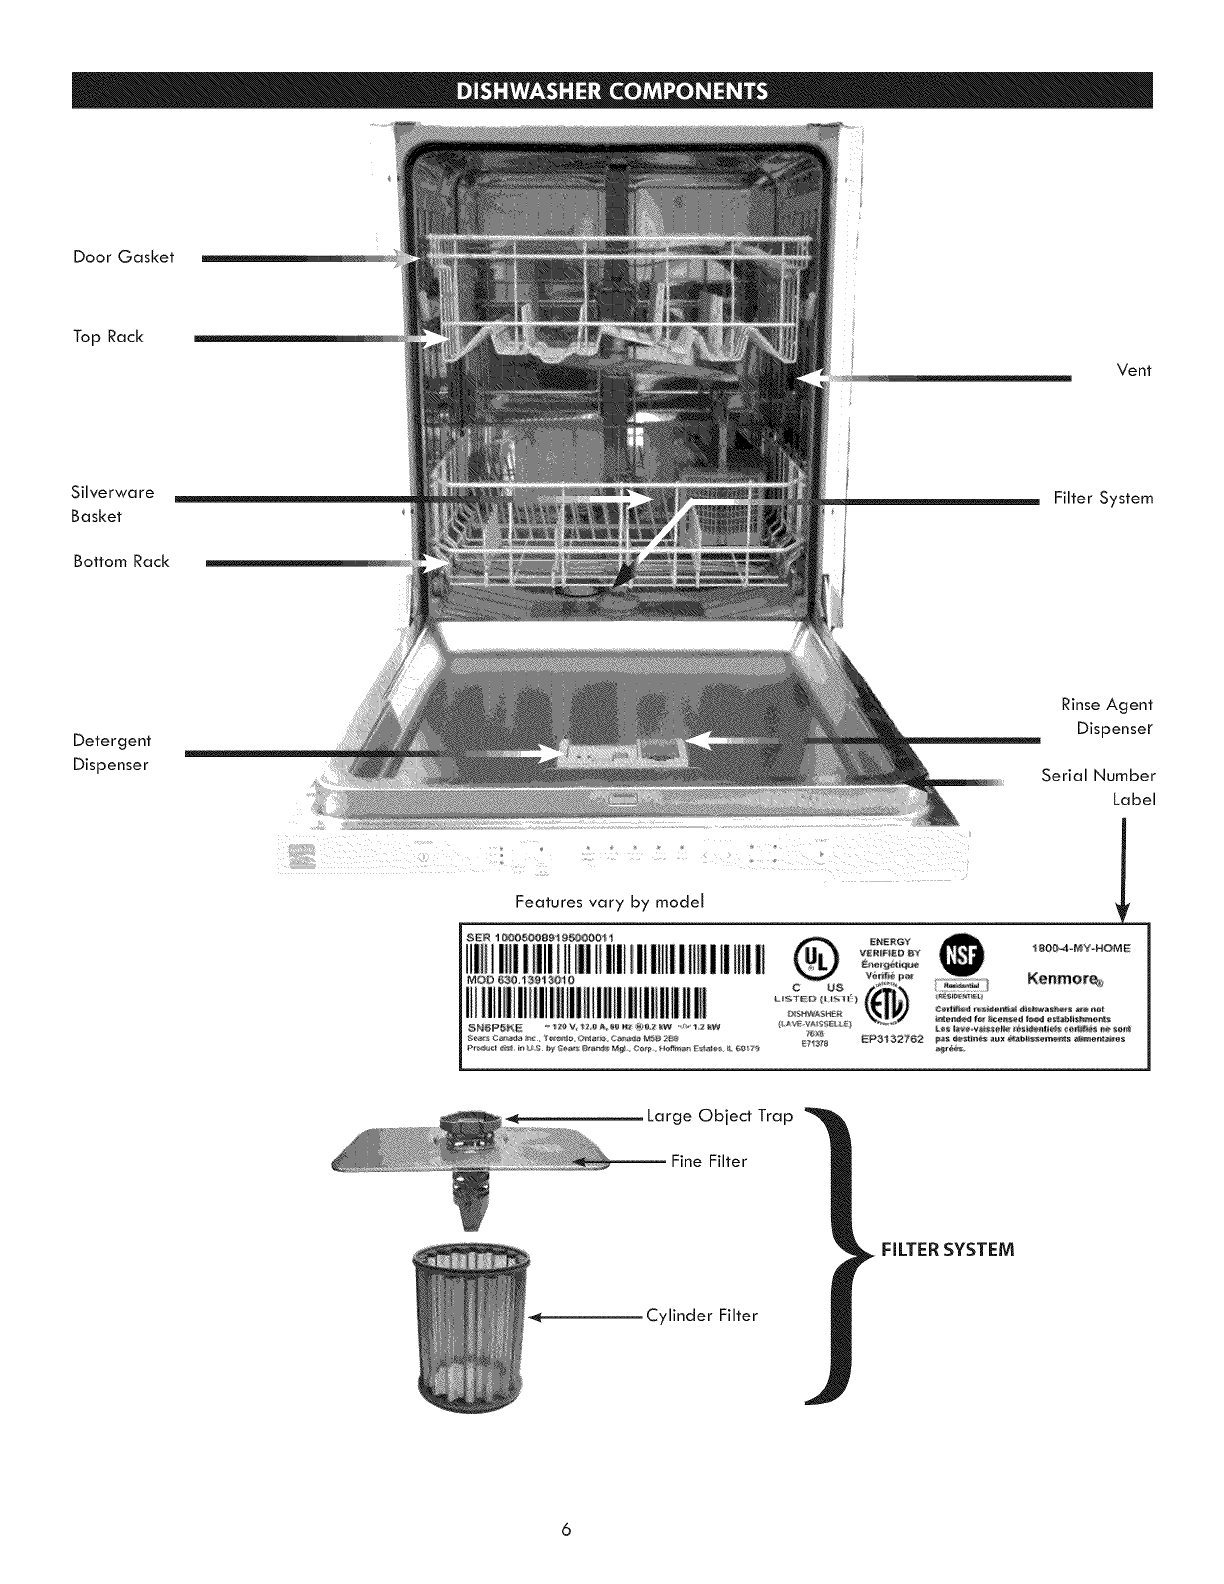 Page 6 of Kenmore Dishwasher 630.1391 User Guide ... Kenmore Dishwasher Diagram on estate dishwasher diagram, dishwasher drain diagram, hobart dishwasher diagram, dryer diagram, ge dishwasher diagram, maytag dishwasher diagram, kenmore 665 wiring schematic, dishwasher loading diagram, kitchenaid dishwasher diagram, portable dishwasher diagram, dishwasher parts diagram, how a dishwasher works diagram, sink disposal diagram, washing machine diagram, lg dishwasher diagram, kenmore appliance diagrams, bosch dishwasher diagram, frigidaire dishwasher diagram, kenmore elite washer parts, whirlpool diagram,